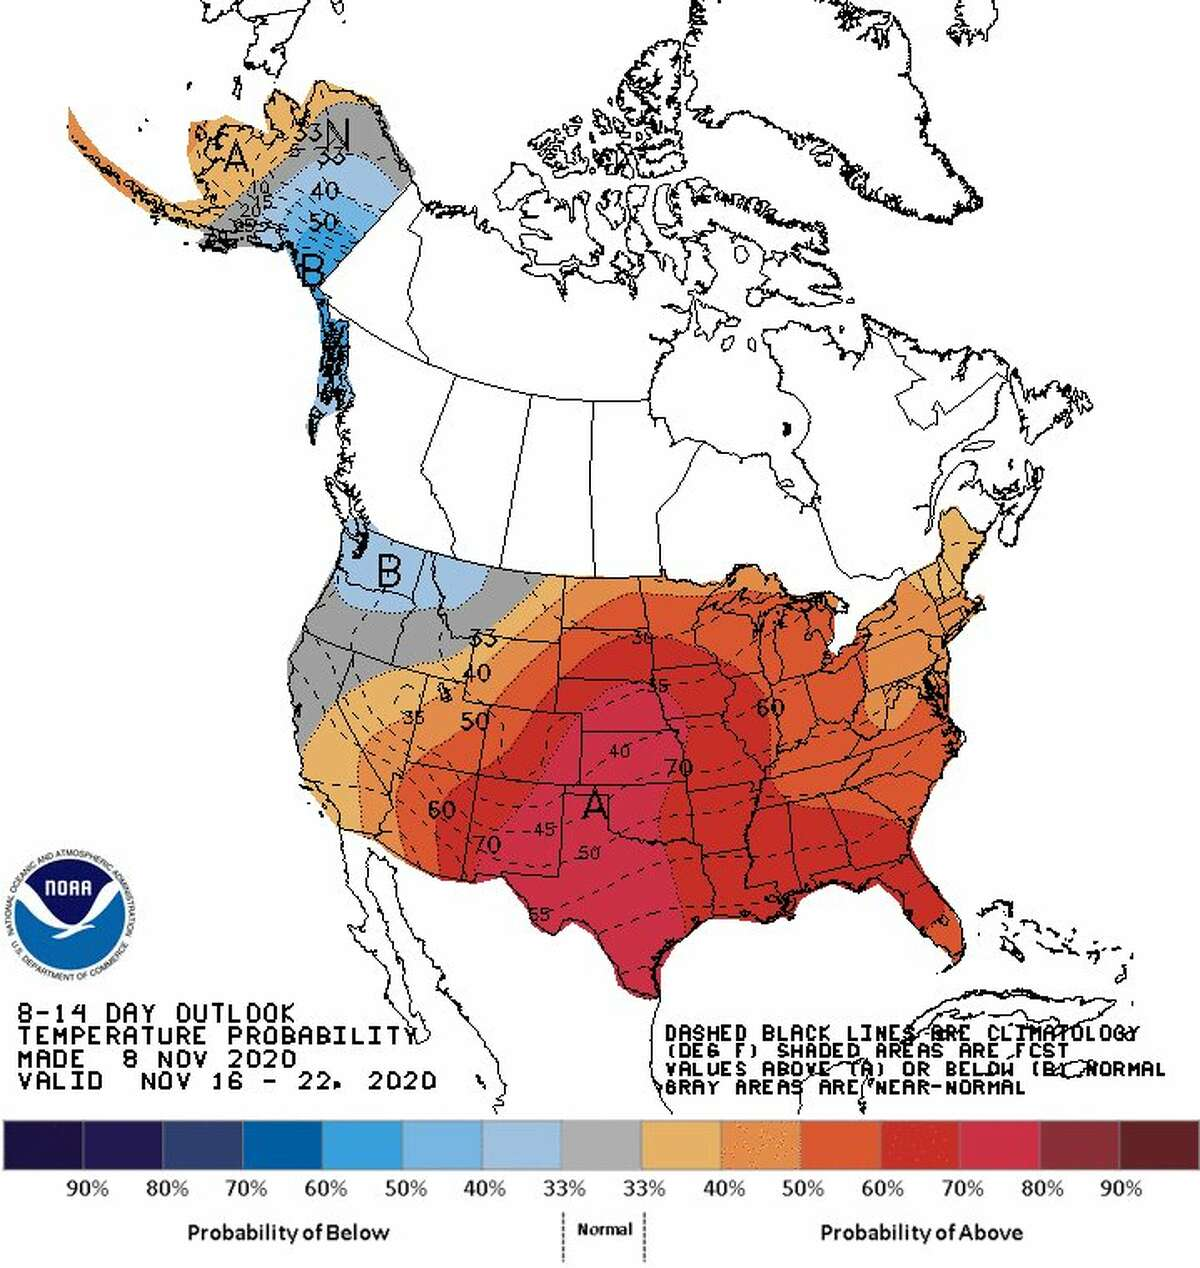 The weather forecast office for the Austin-San Antonio region shared an 8-14-day outlook for temperature and rain probability on Monday. The temperature map shows a probability of 65 percent above normal temperatures. The rain chances are 50 to 60 percent below normal according to the map.